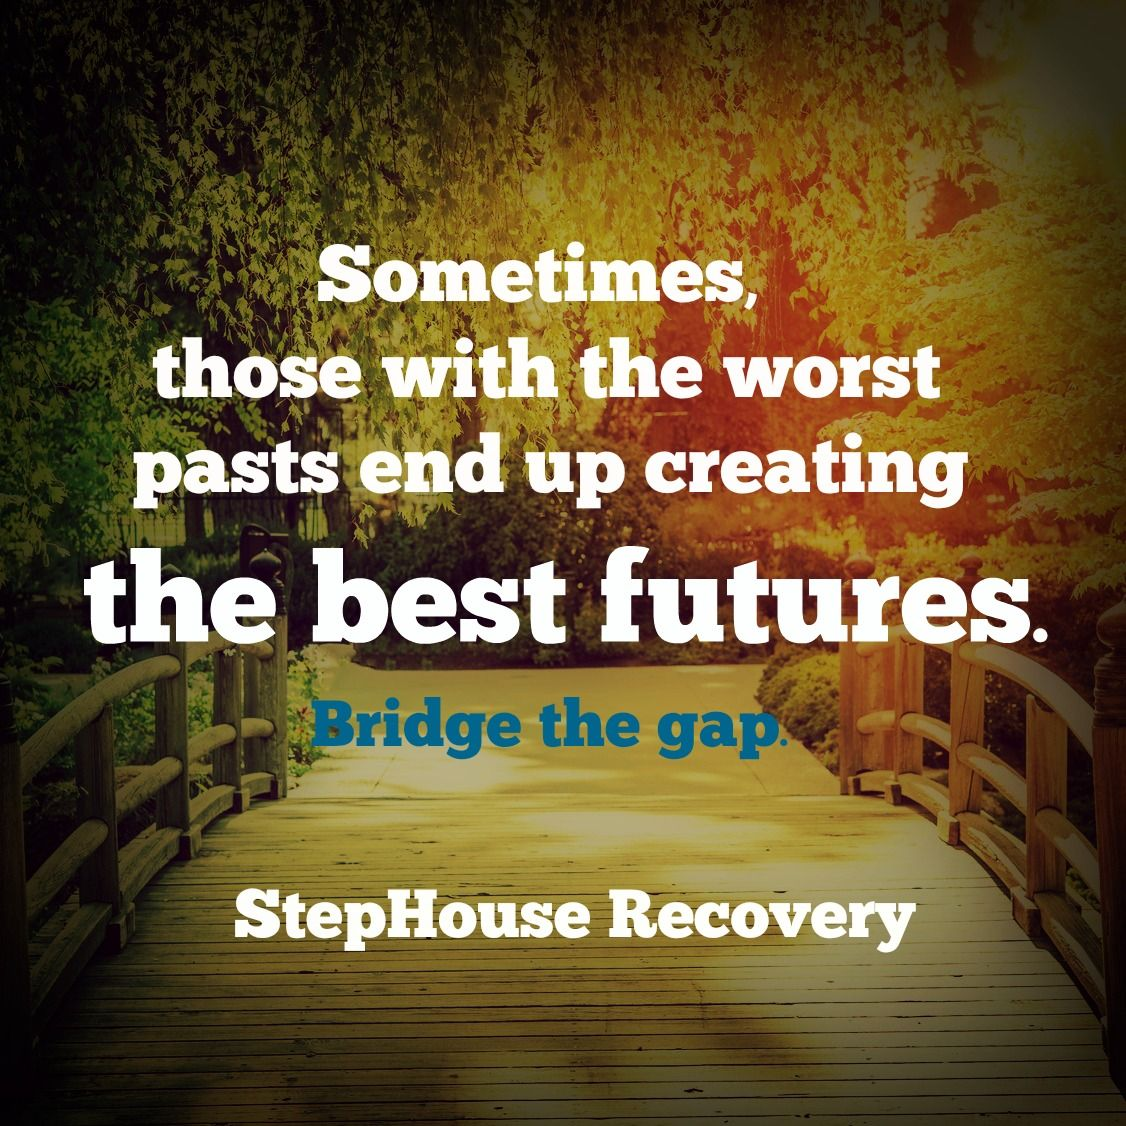 Live Futures Quotes Bridge The Gap  Stephouse Recovery   Inspire  Quotes To Live